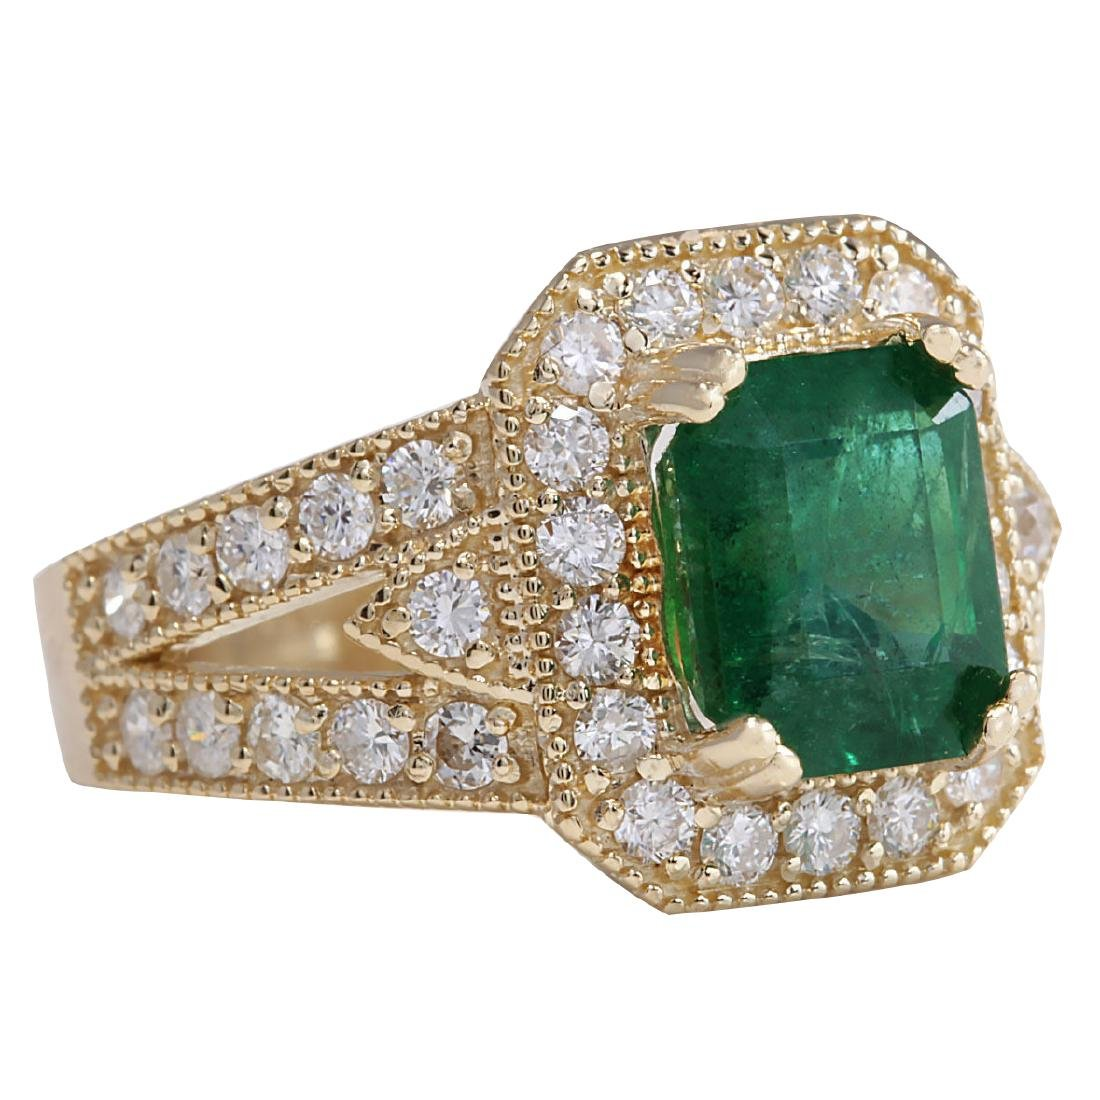 3.96CTW Natural Emerald And Diamond Ring 18K Solid - 2